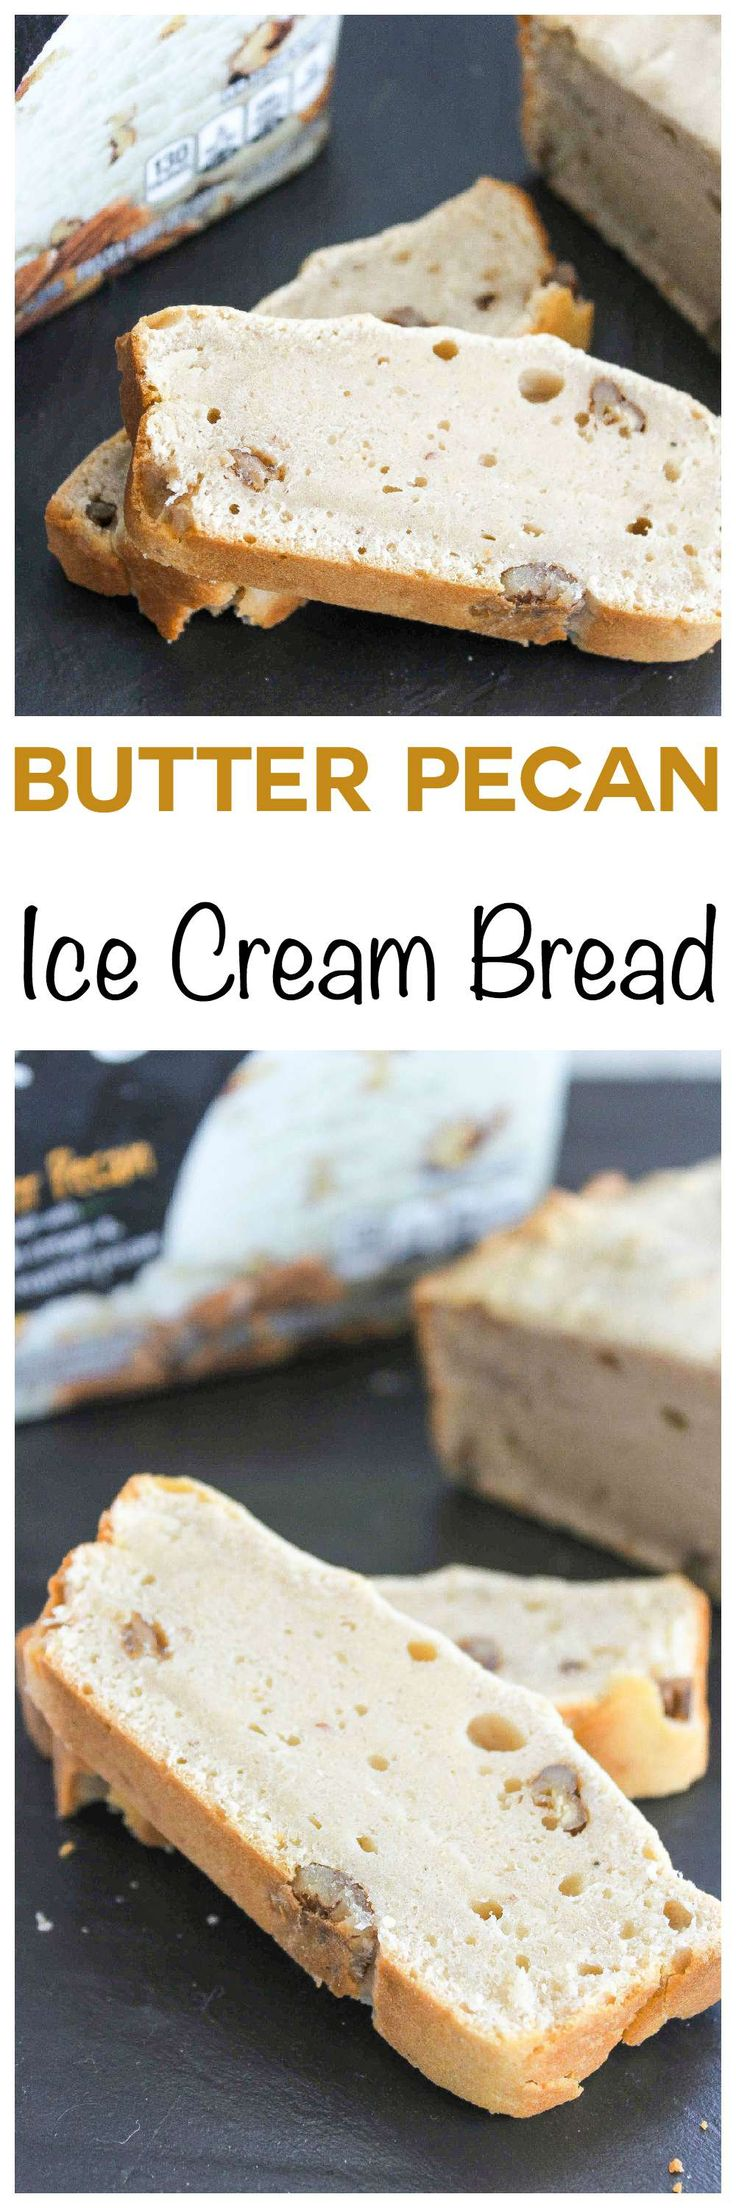 Easy Butter Pecan Ice Cream Bread: Moist and tender bread that is one the easiest recipes on the planet! Can you guess the 2 common ingredients?!